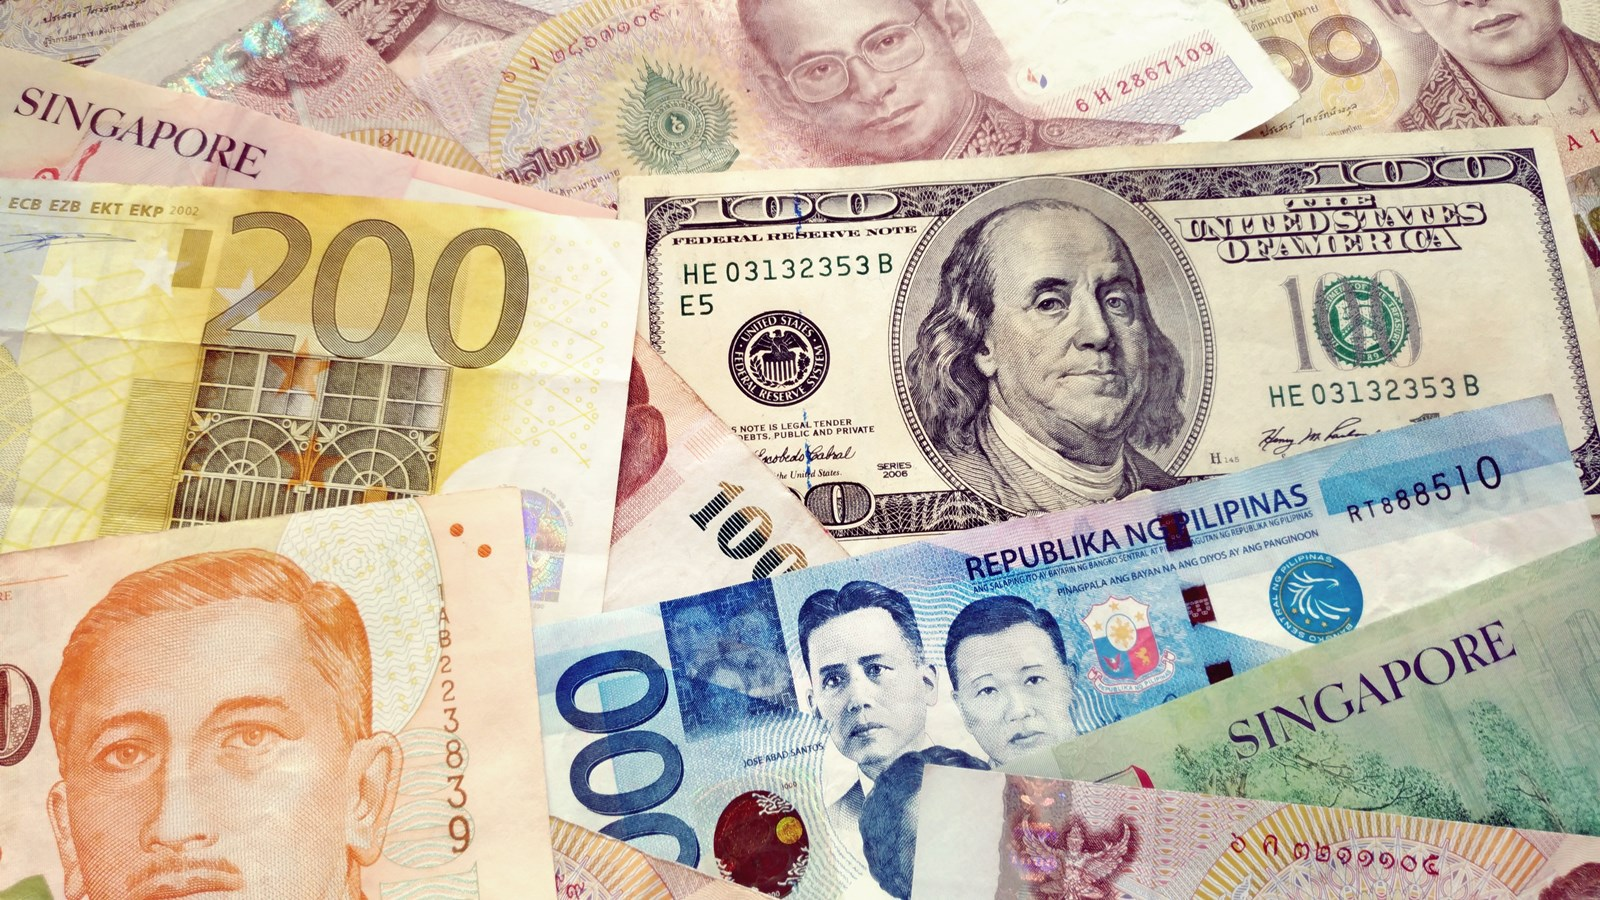 Is an ASEAN currency crisis looming?